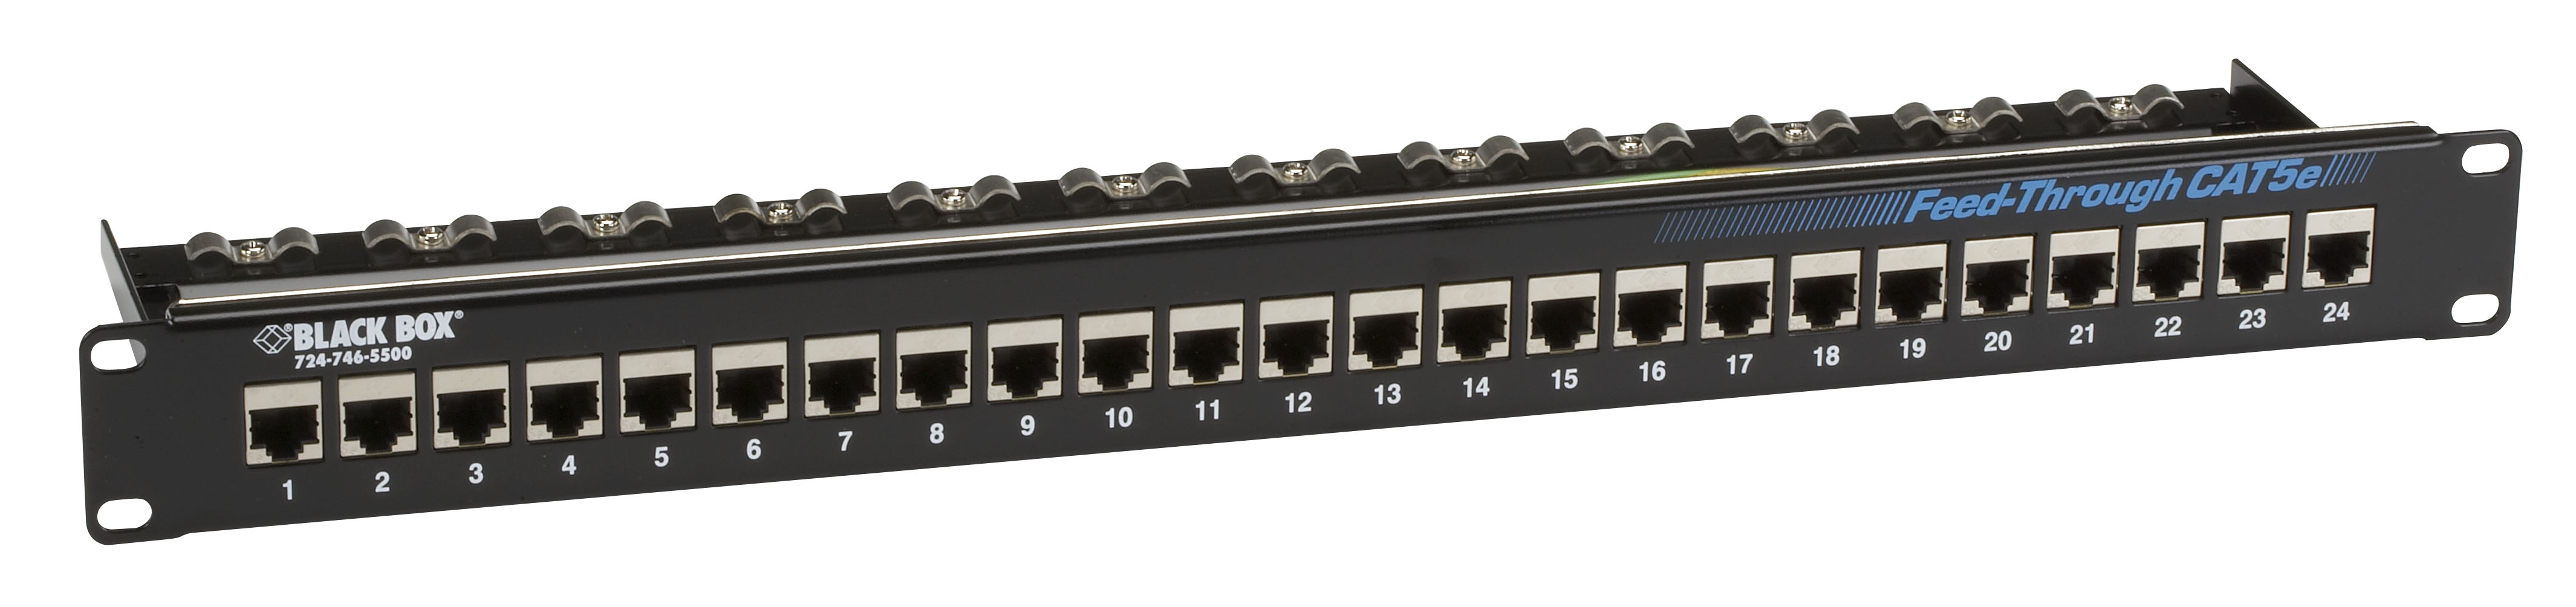 Cat5e Feed Through Patch Panel 1u Shielded 24 Port Black Box T568b Wiring Diagram Additional Product Image